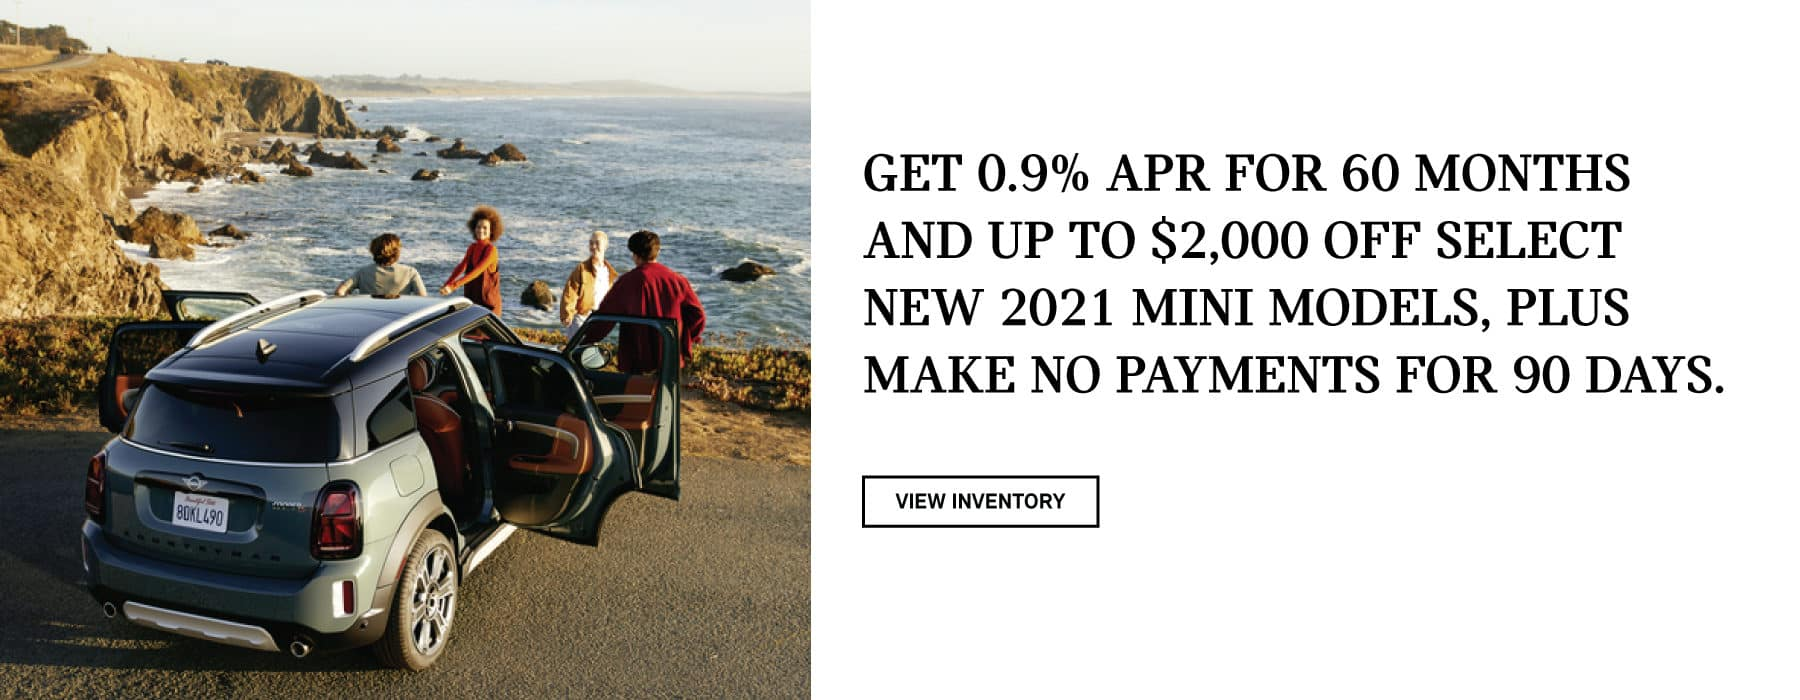 Get 0.9% APR for 60 months and up to $2,000 off select new 2021 MINI models, plus make no payments for 90 days. Valid through 05/02/21. Click to view inventory. See dealer for full details. Picture shows four people standing in front of a MINI vehicle, with all of its doors open, on a cliffside by the ocean.